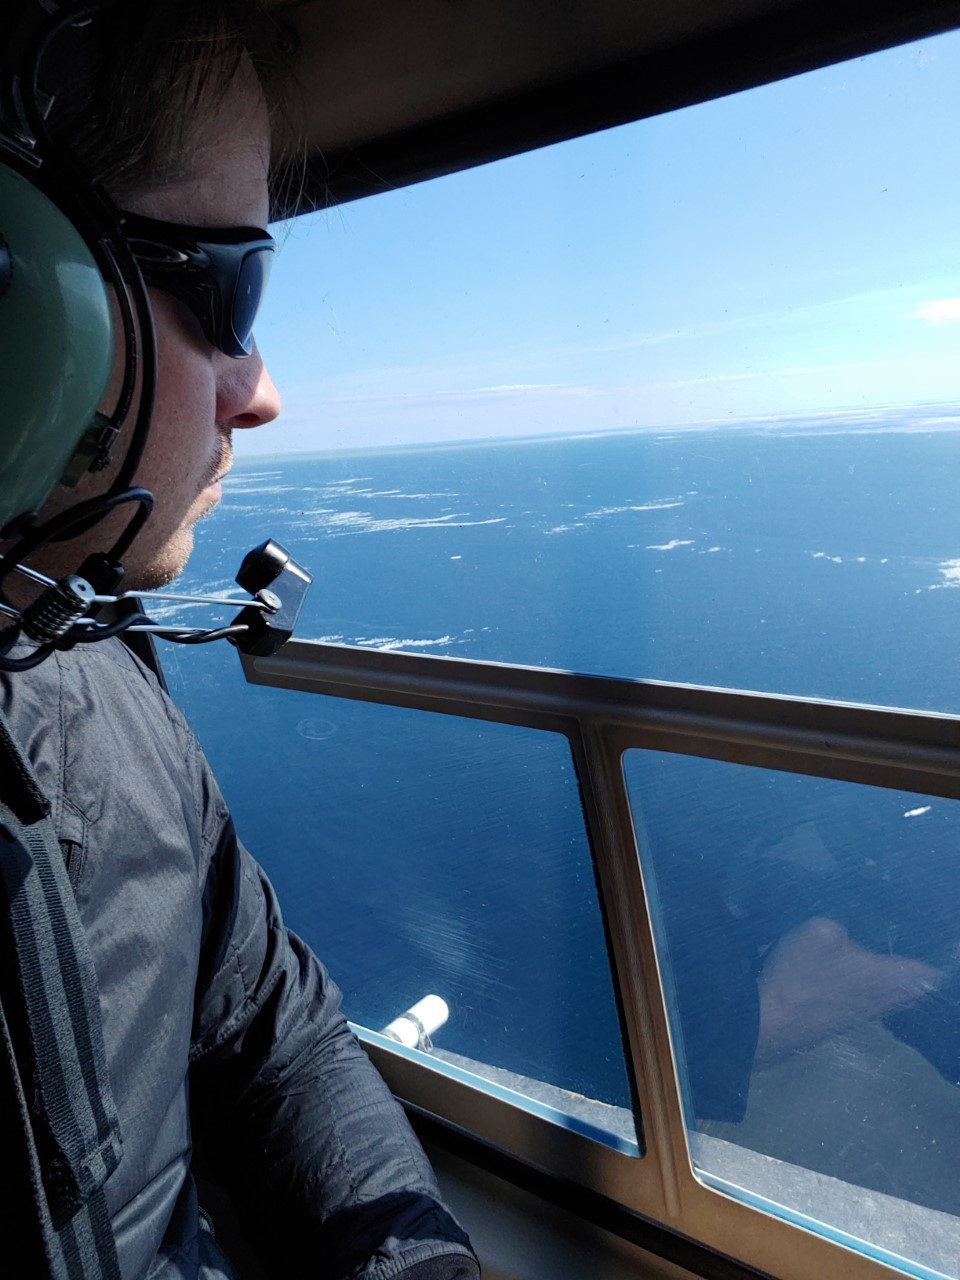 A man with sunglasses looks out a helicopter window. The view is of an ocean with some sea ice.